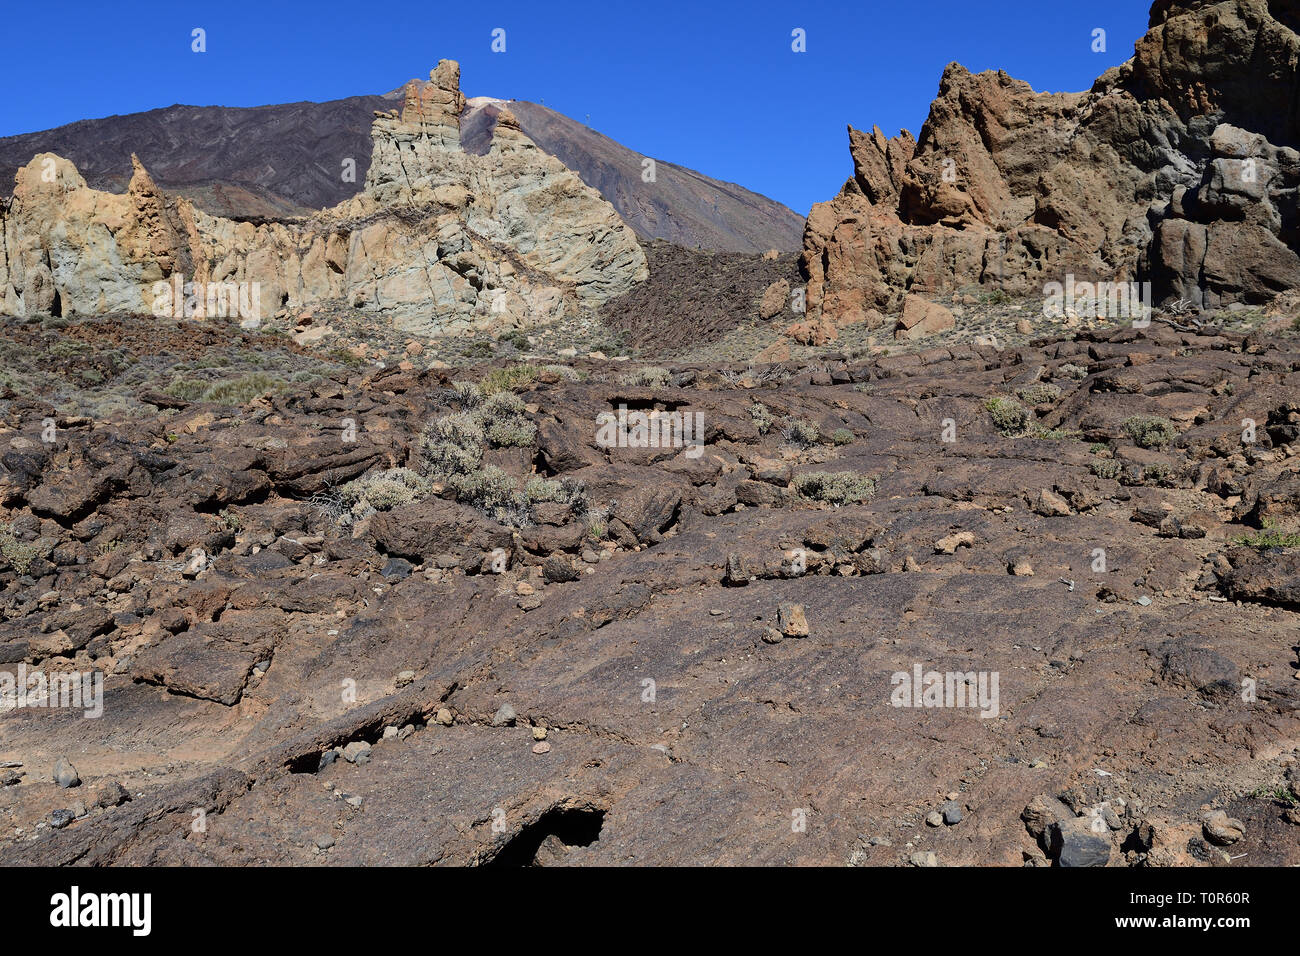 View of a lava field in Tiede National Park in Tenerife - Stock Image